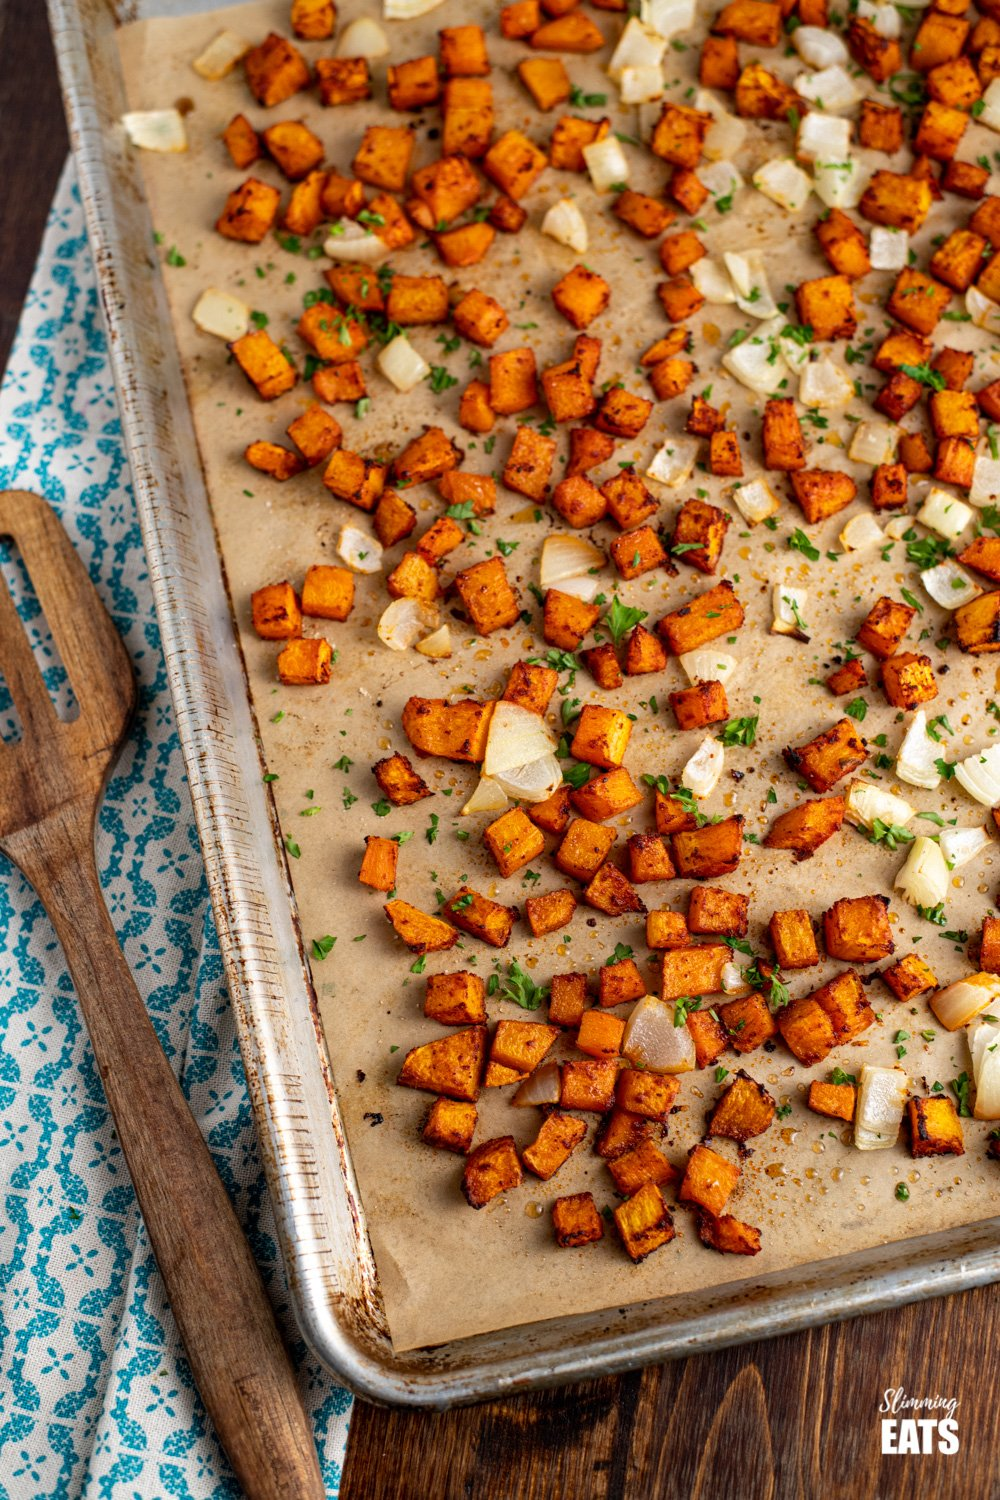 seasoned roasted butternut squash on baking tray lined with parchment paper